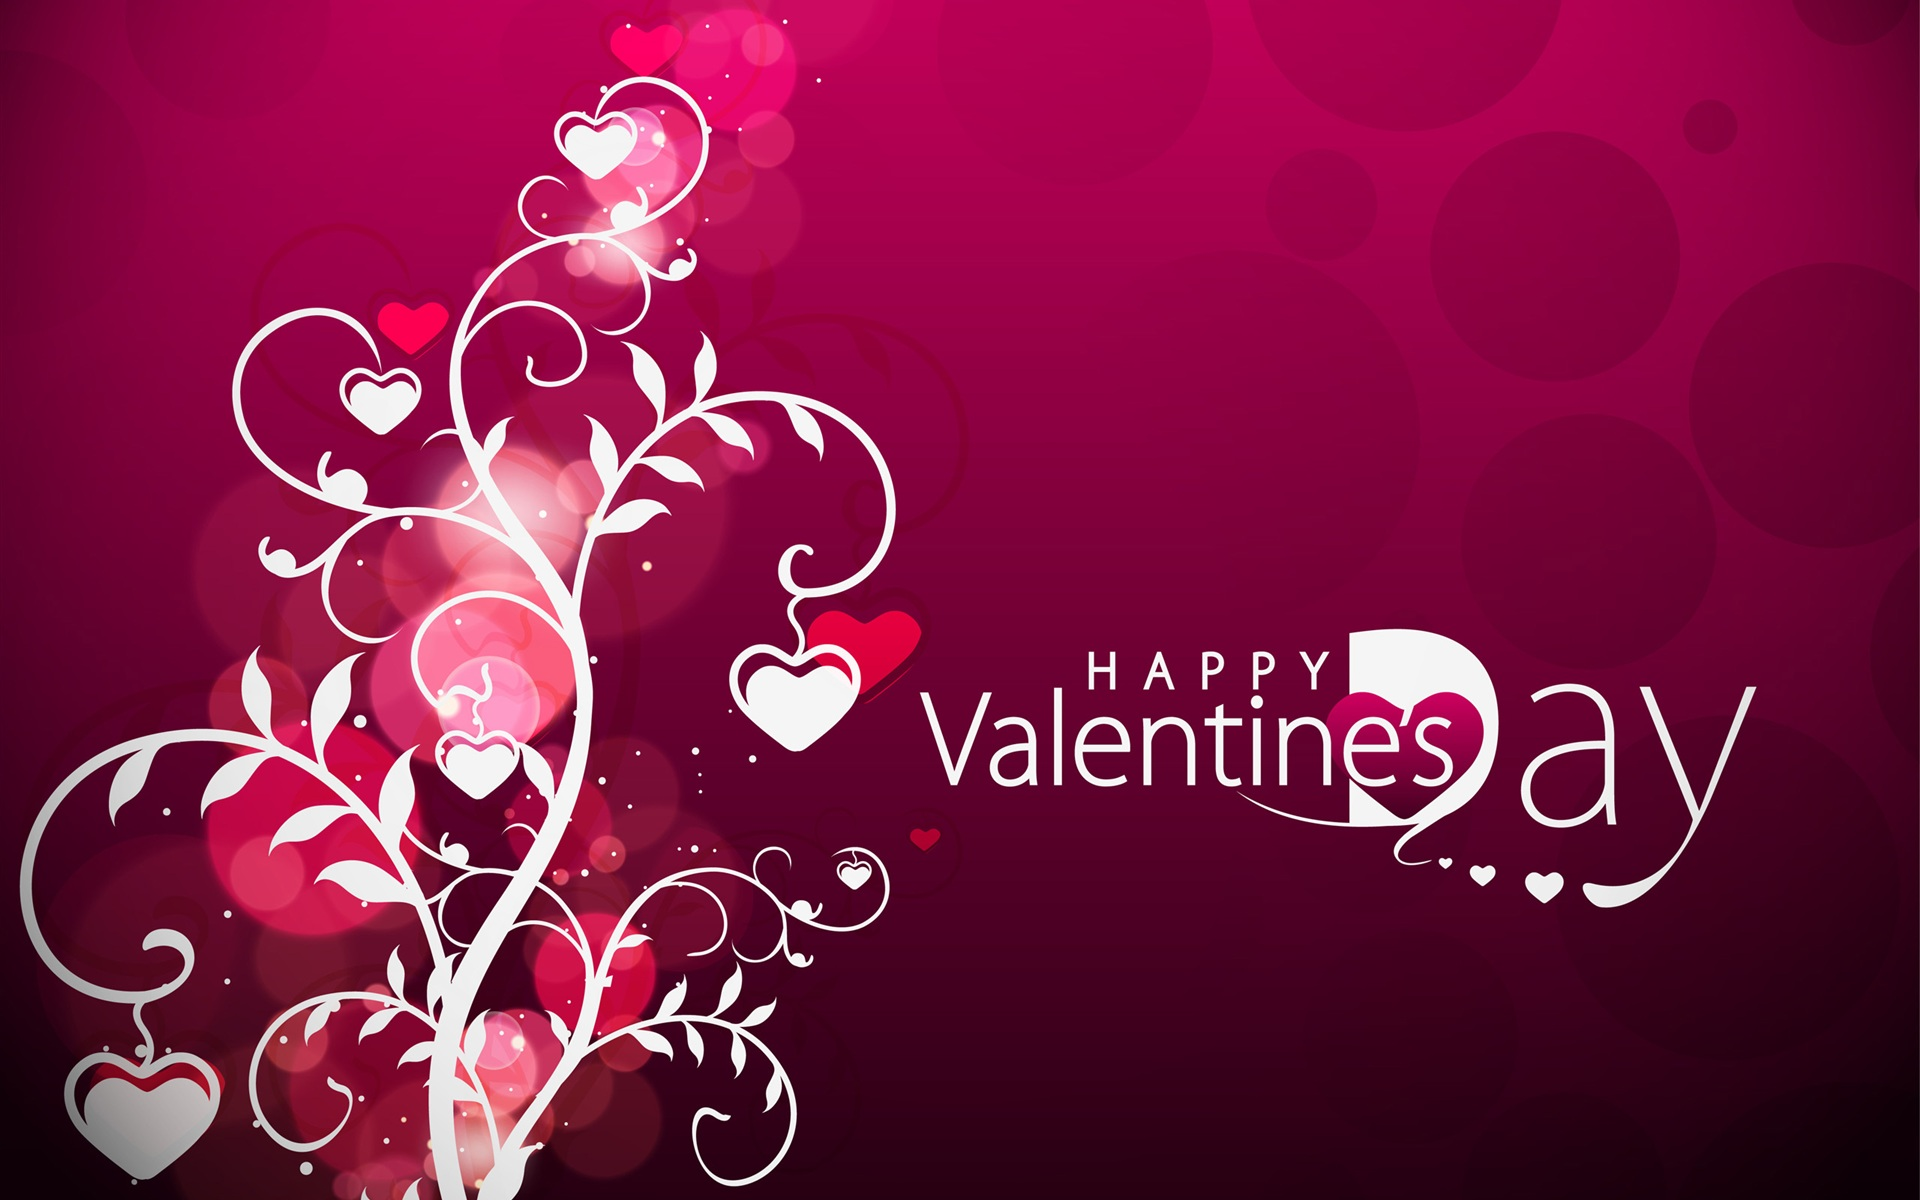 Wallpaper Vector Valentines Day hearts 2560x1920 HD Picture Image 1920x1200